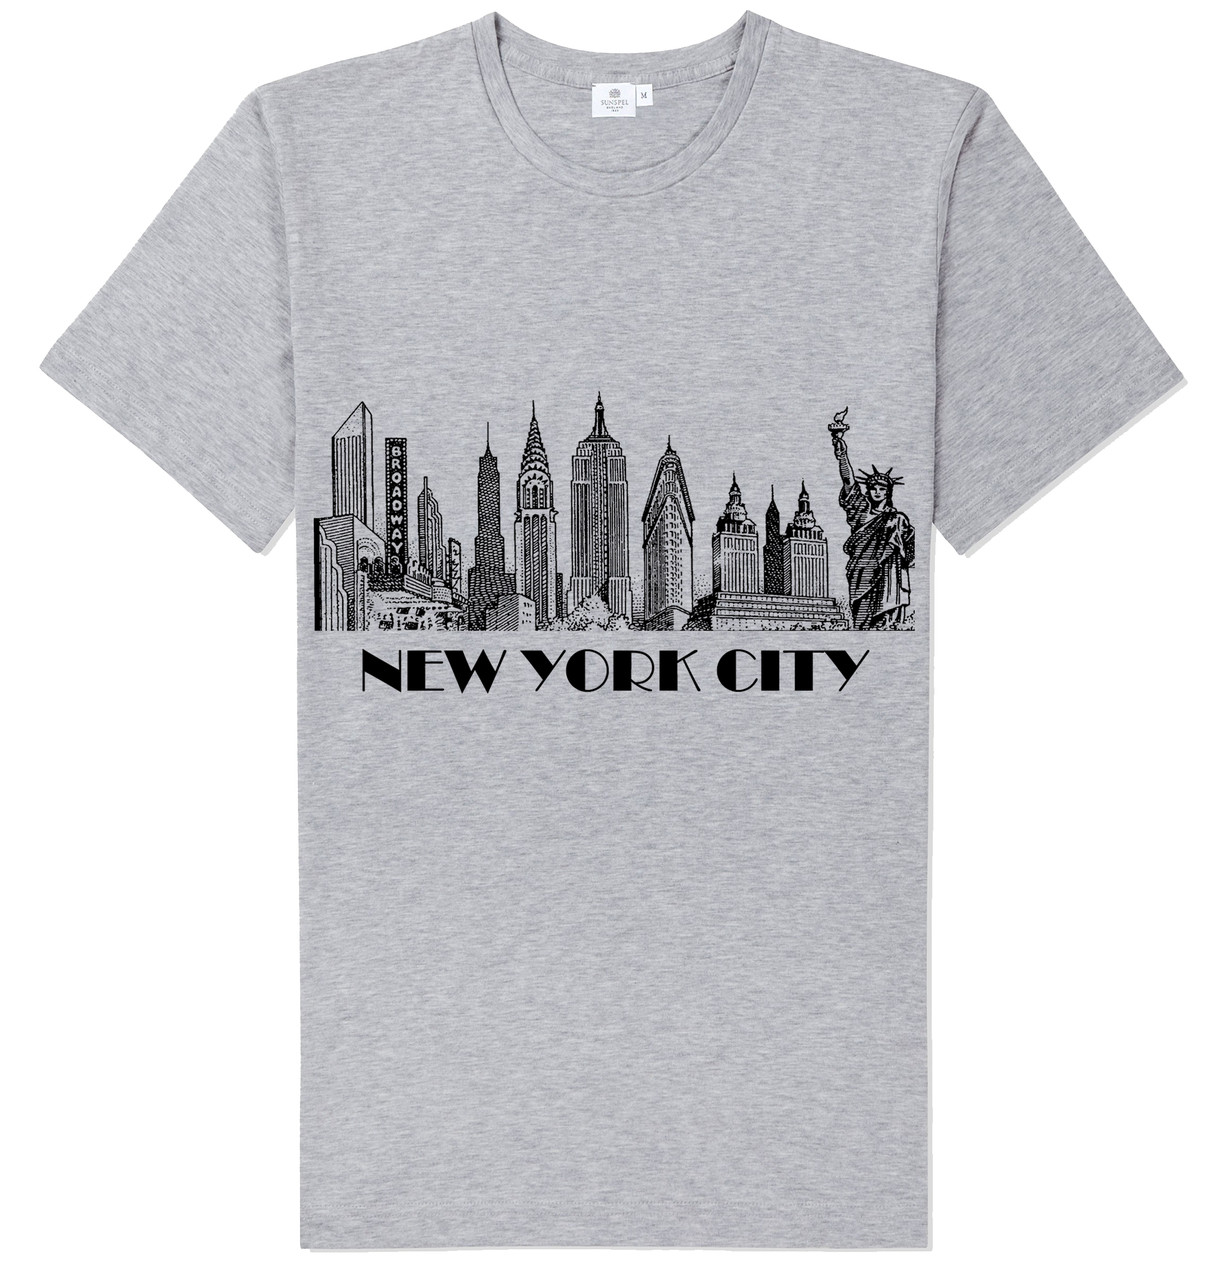 T Shirt Design York: New York City Skyline T-shirt -Grey